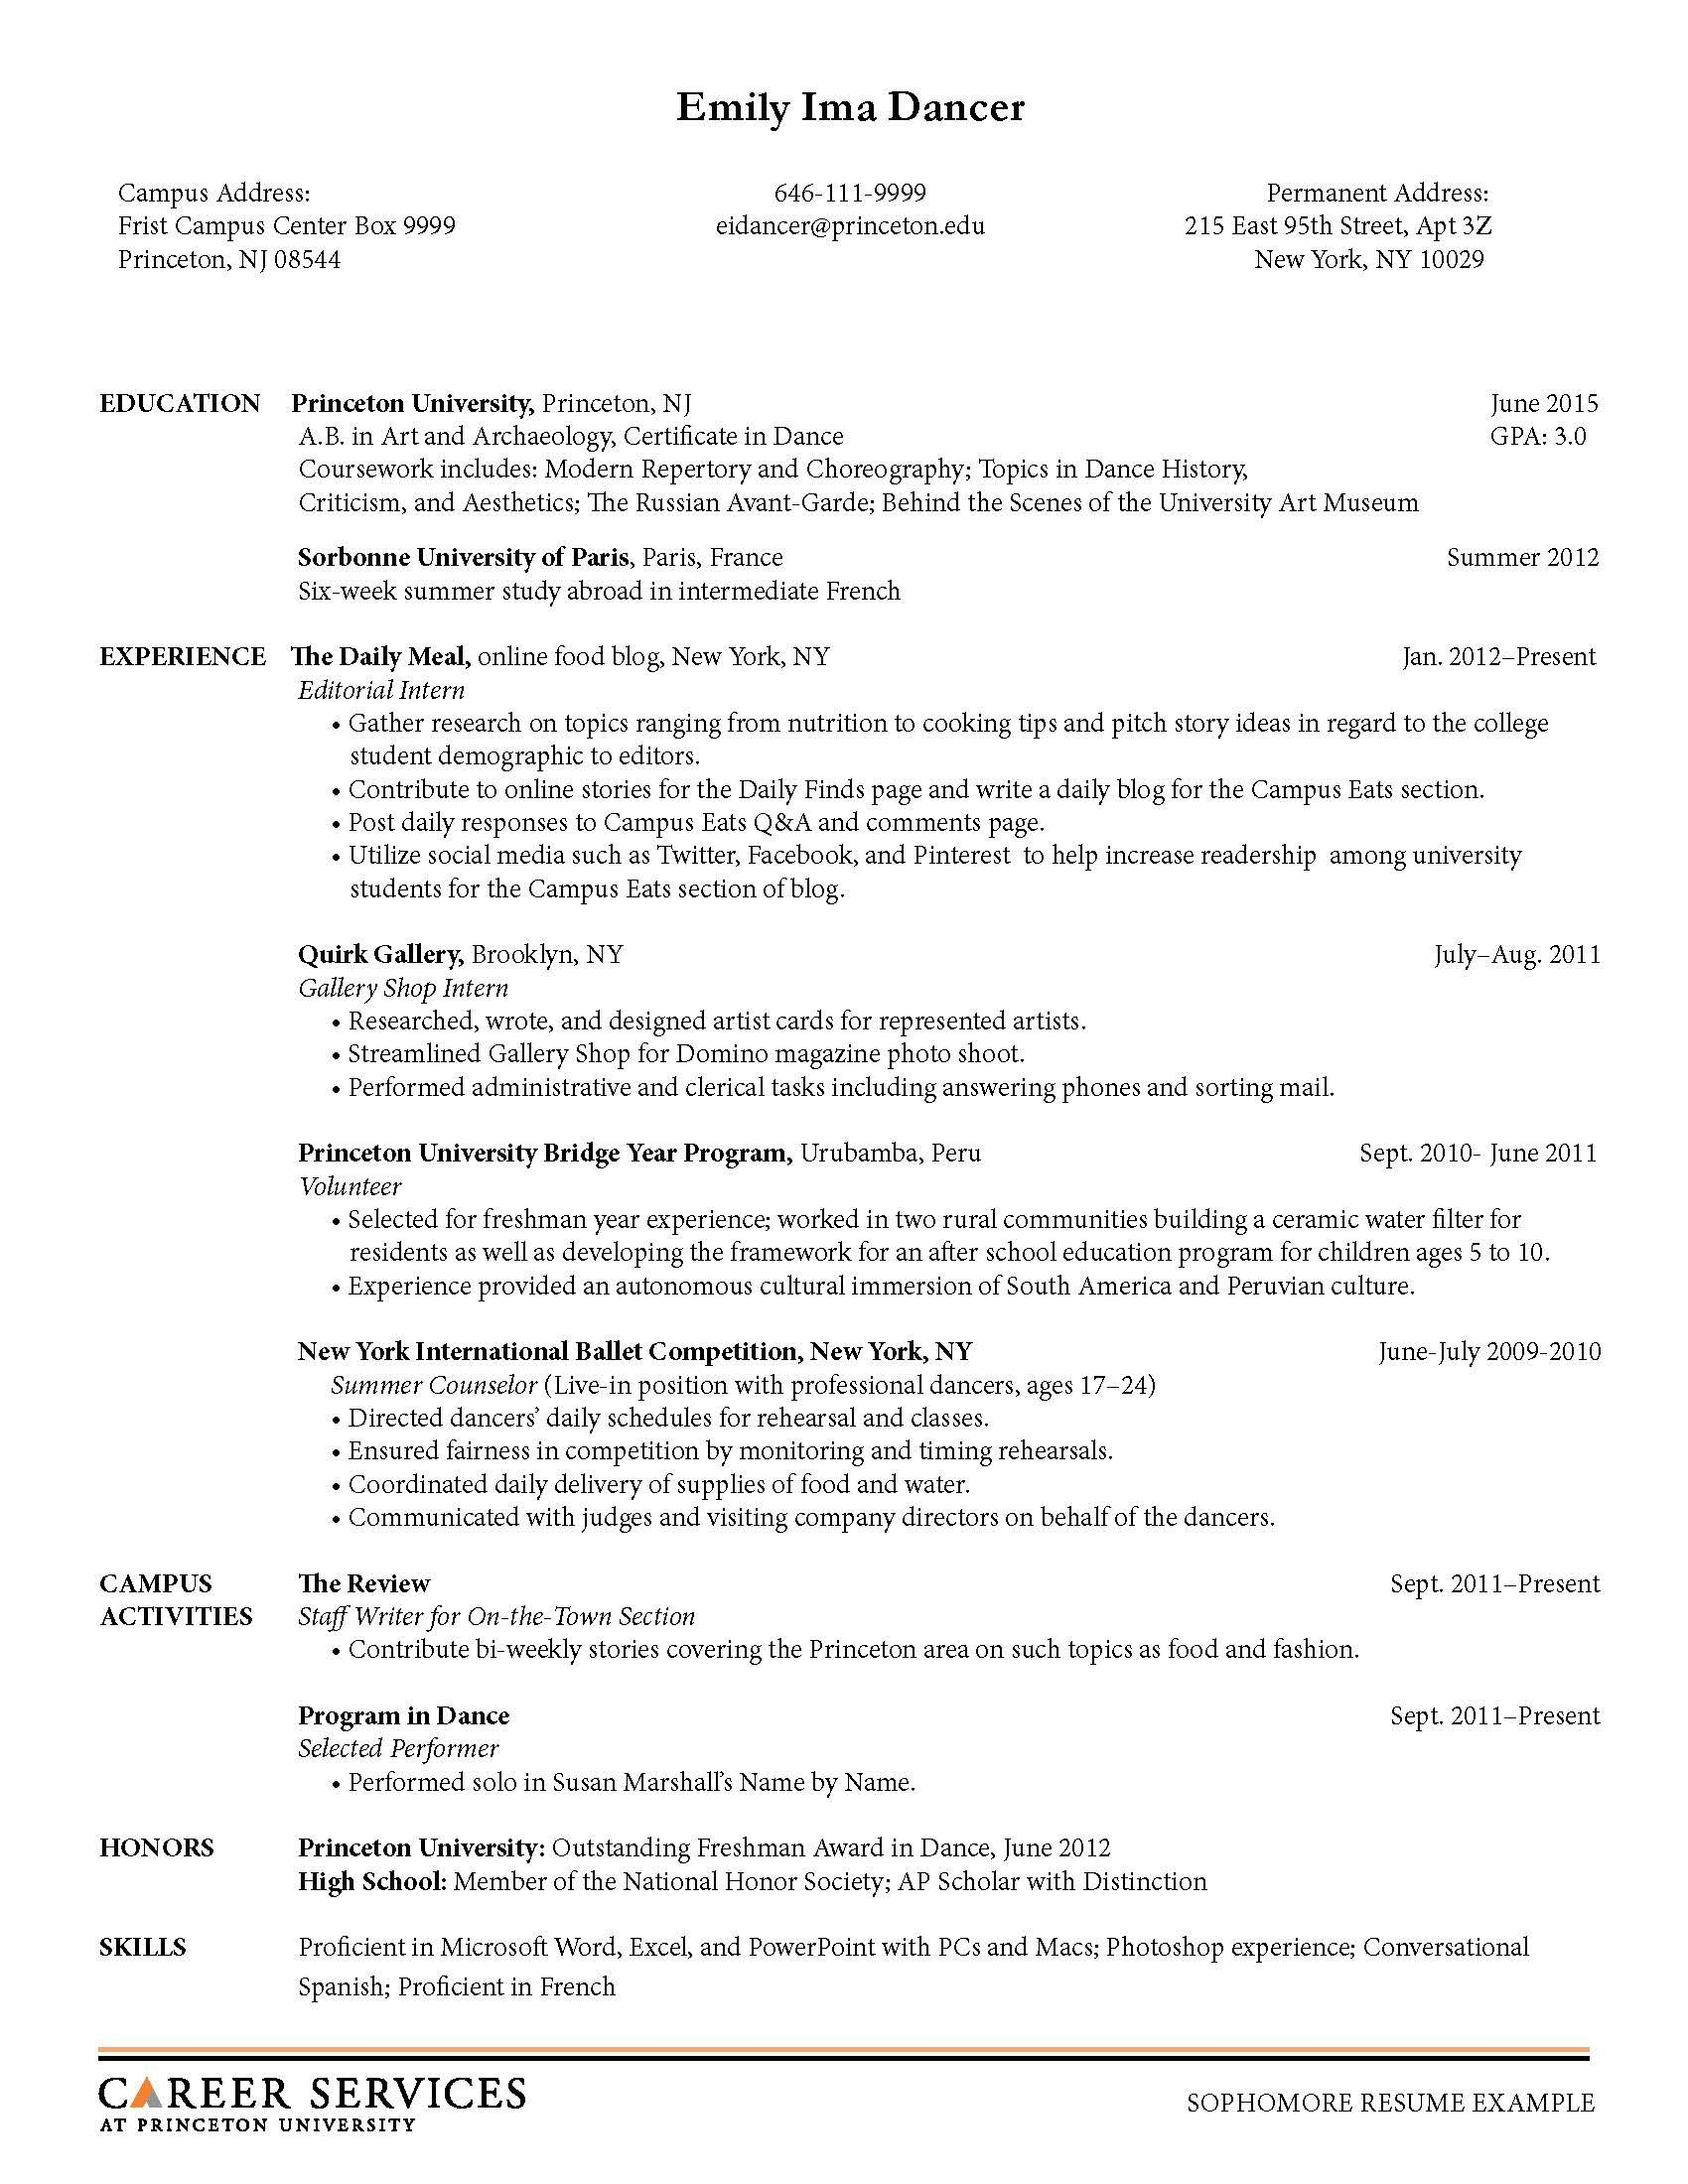 Opposenewapstandardsus  Pretty Sample Resume Resume And Career On Pinterest With Interesting Skills For Cna Resume Besides Portfolio Manager Resume Furthermore Game Designer Resume With Comely Resume Samples For Job Also Objective Statement In Resume In Addition Sample Electrician Resume And Adobe Resume Template As Well As Free Resume Templete Additionally Ou Optimal Resume From Pinterestcom With Opposenewapstandardsus  Interesting Sample Resume Resume And Career On Pinterest With Comely Skills For Cna Resume Besides Portfolio Manager Resume Furthermore Game Designer Resume And Pretty Resume Samples For Job Also Objective Statement In Resume In Addition Sample Electrician Resume From Pinterestcom